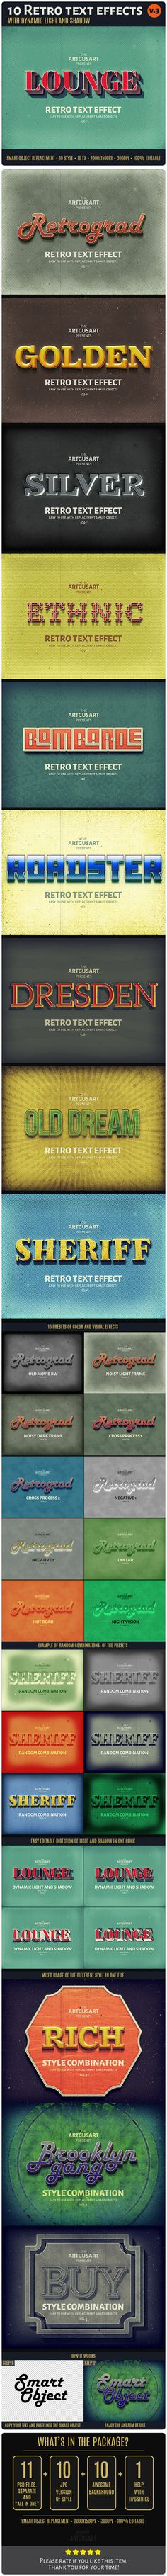 10 Retro Text Effect for Photoshop. Download: http://graphicriver.net/item/10-retro-text-effect-v3/12342867?ref=ksioks